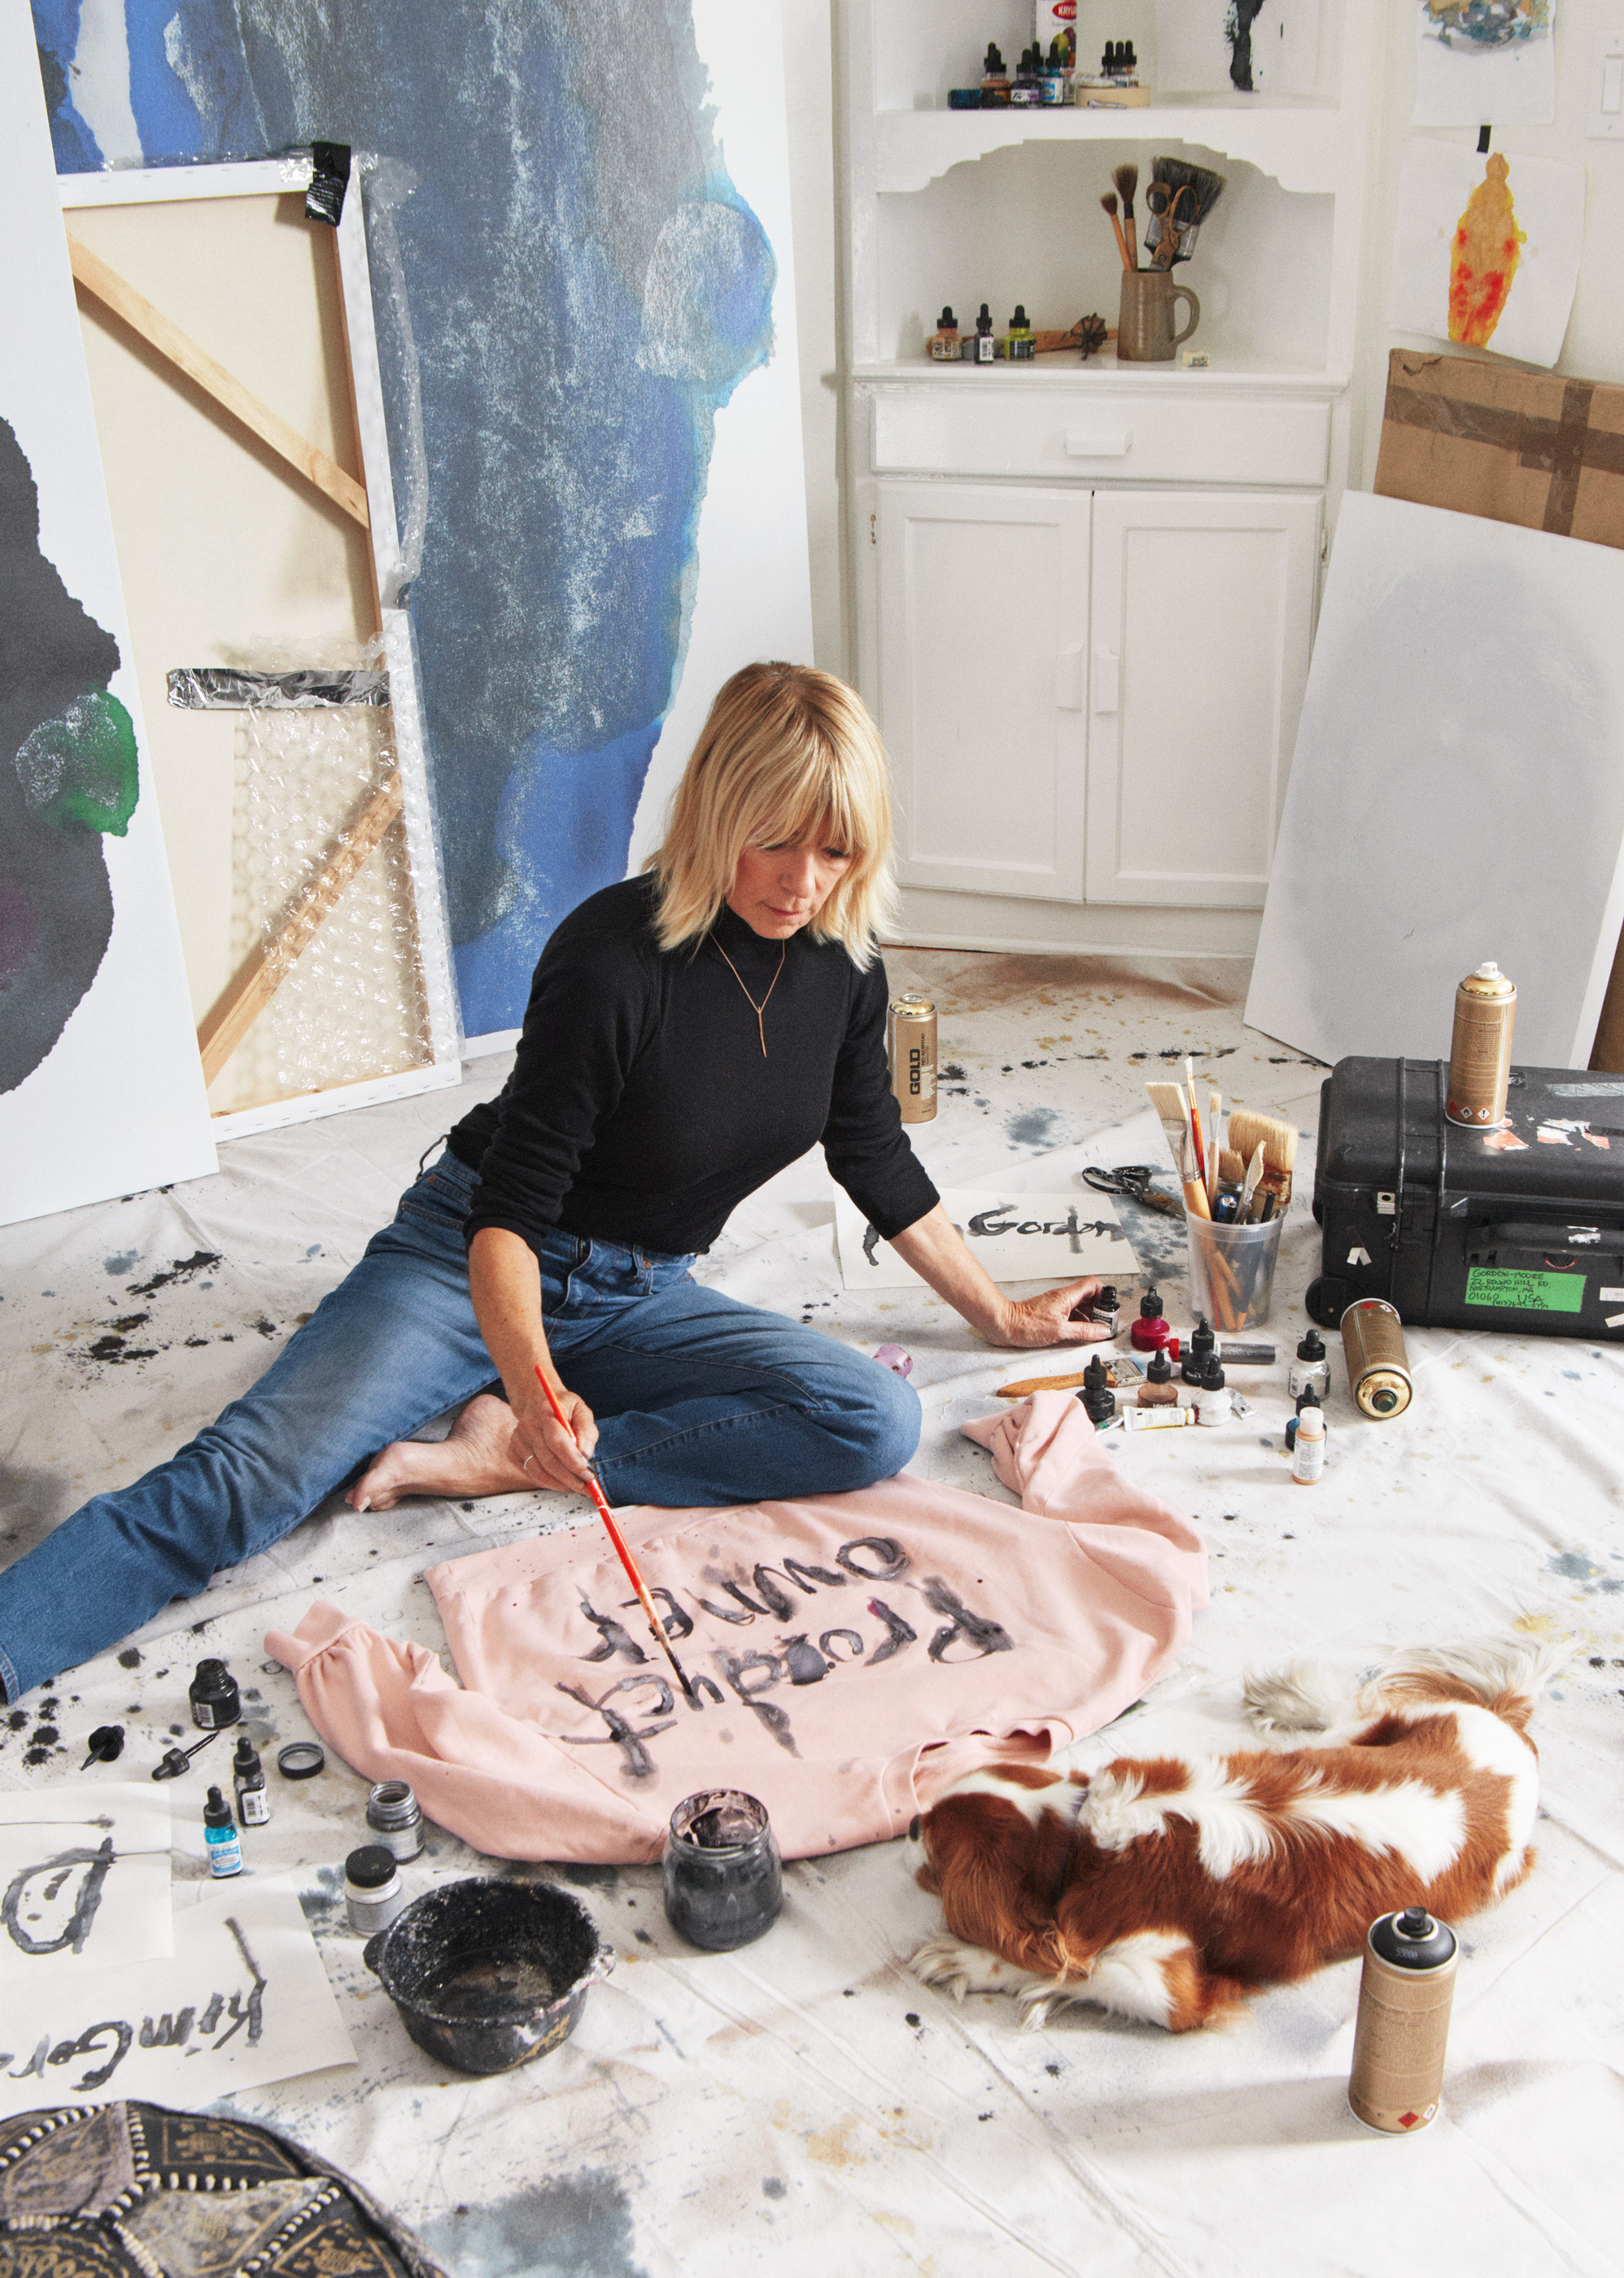 Kim Gordon & Other Stories_Co-lab (1)